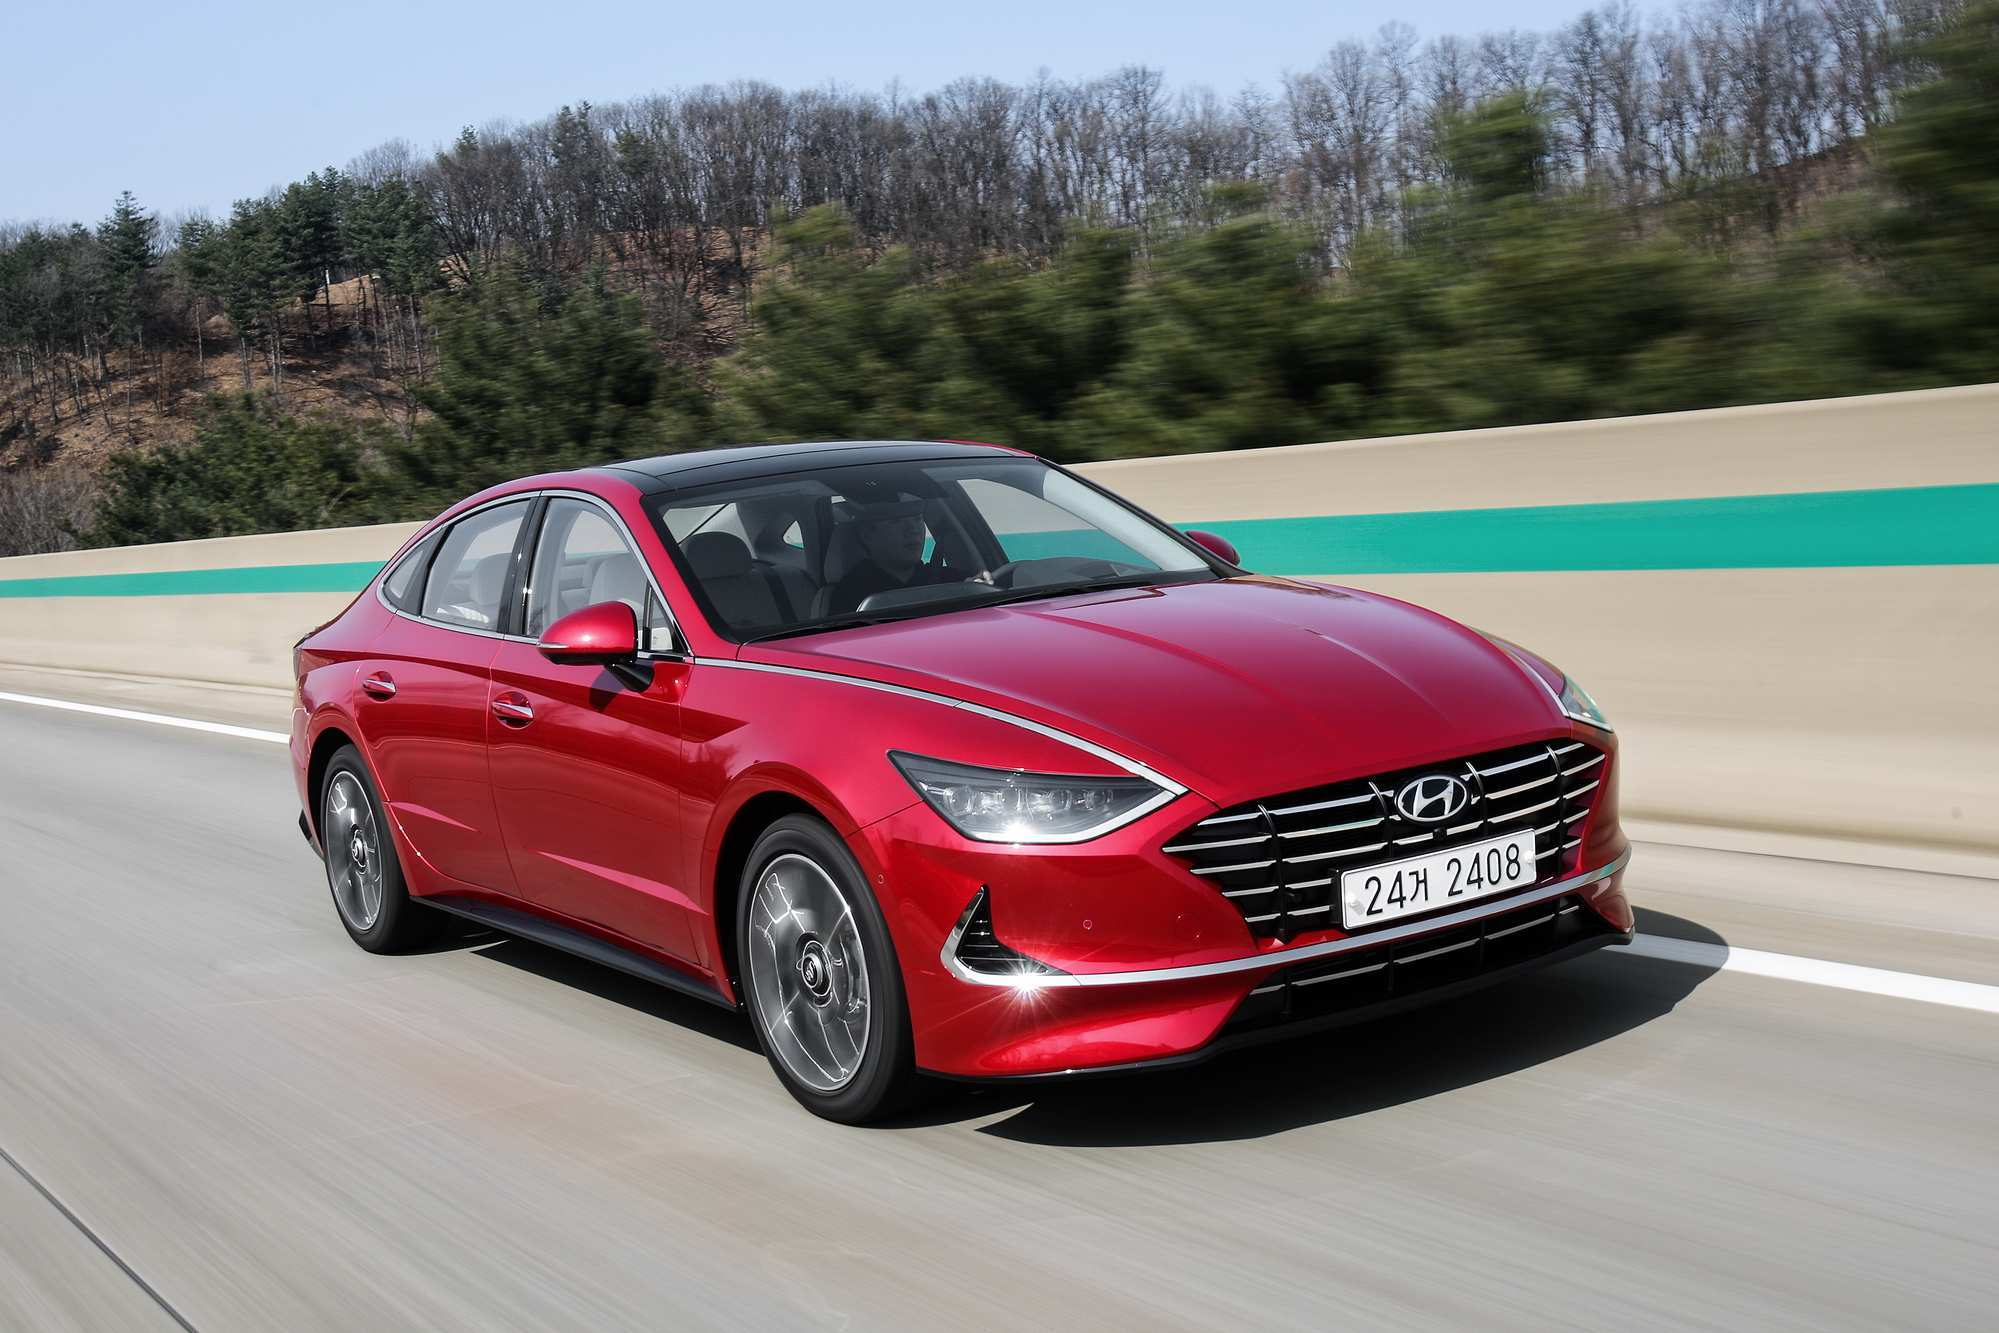 79 All New 2020 Hyundai Sonata Review Release Date And Concept